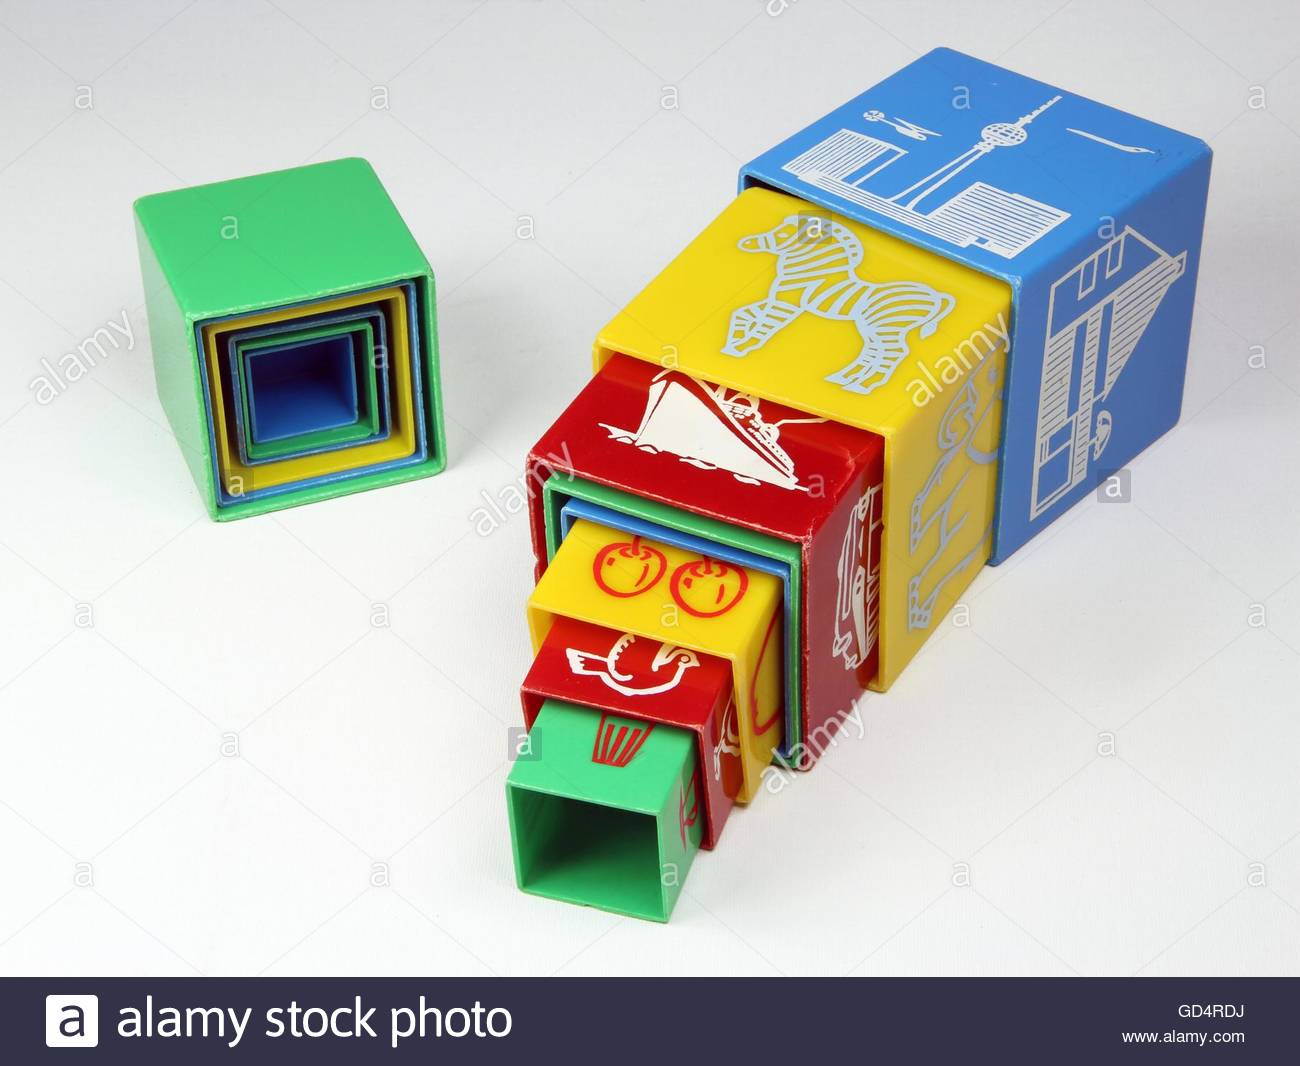 toys, plugin cubes for infants with synthetic material, design: probable design by factory, made by: VEB Plaho Steinach, - Stock Image